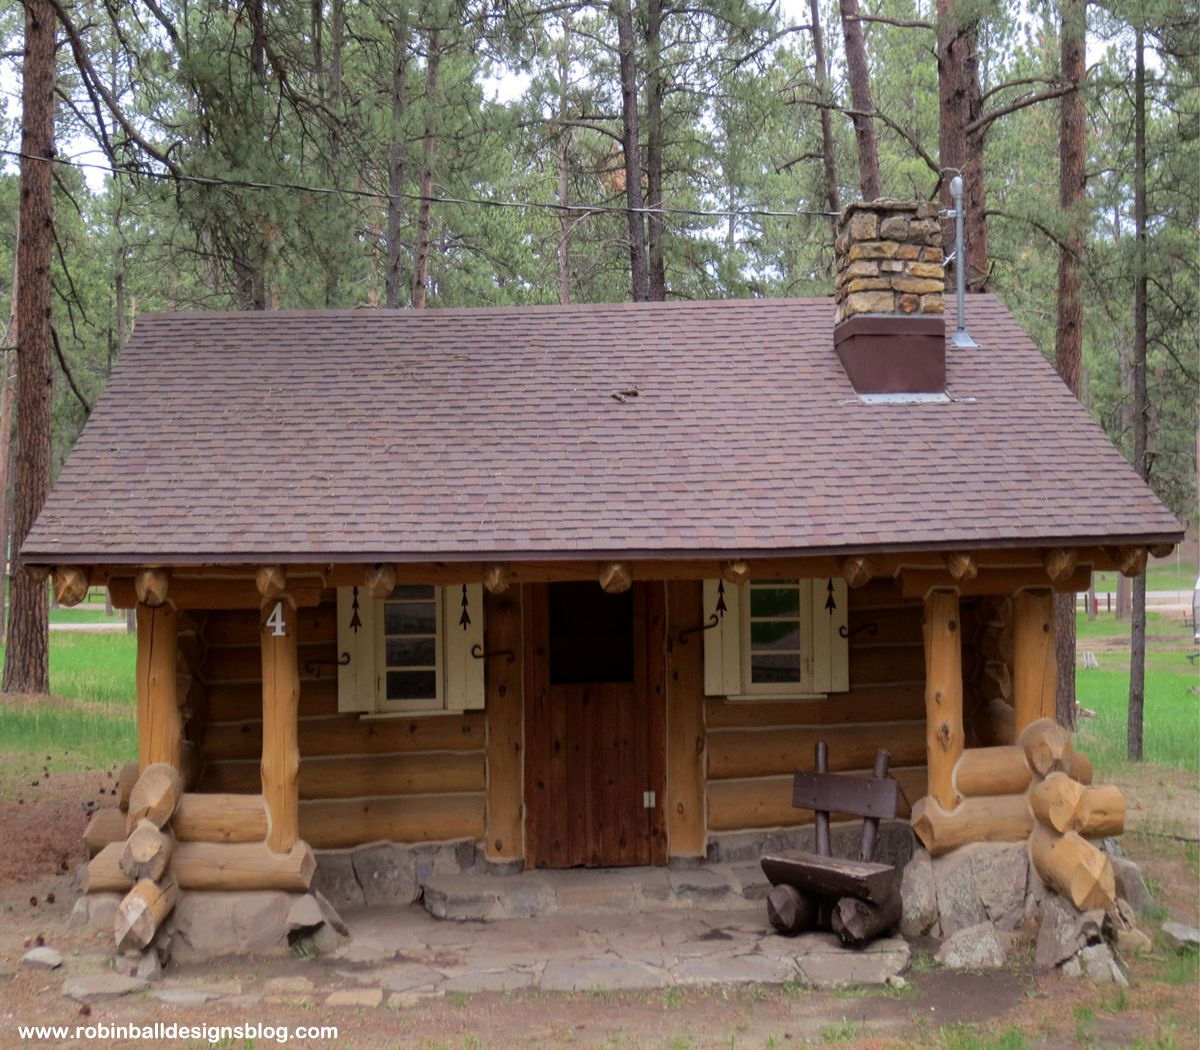 South Dakota, Custer State Park. Our Cabin At The Blue Bell Lodge. Click